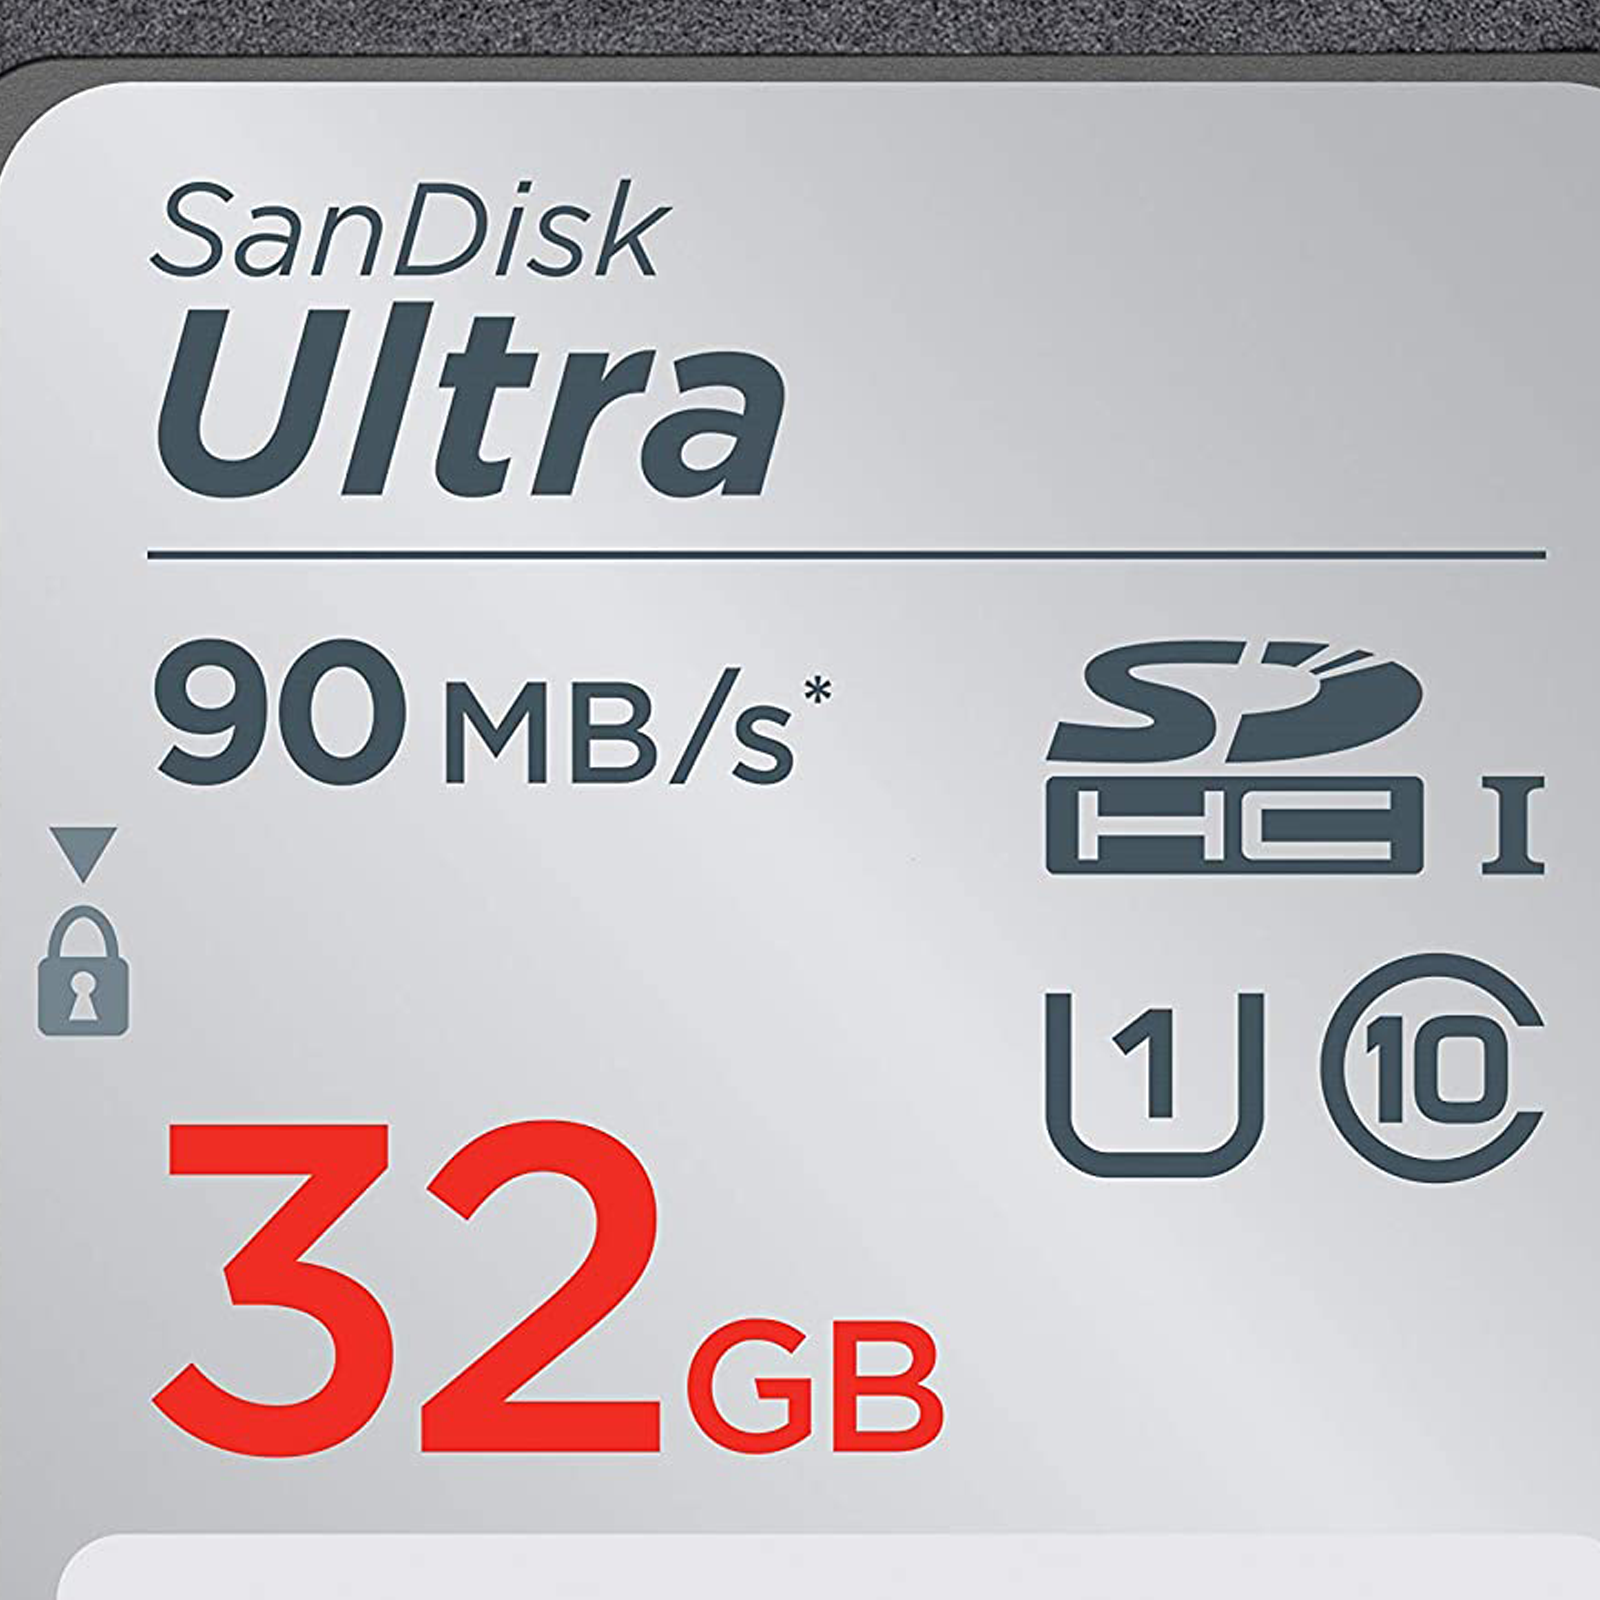 SanDisk Ultra 32GB Class 10 UHS-I SDHC Memory Card (90 MB/s Read Speed, SDSDUNR-032G-GN6IN, Silver)_2